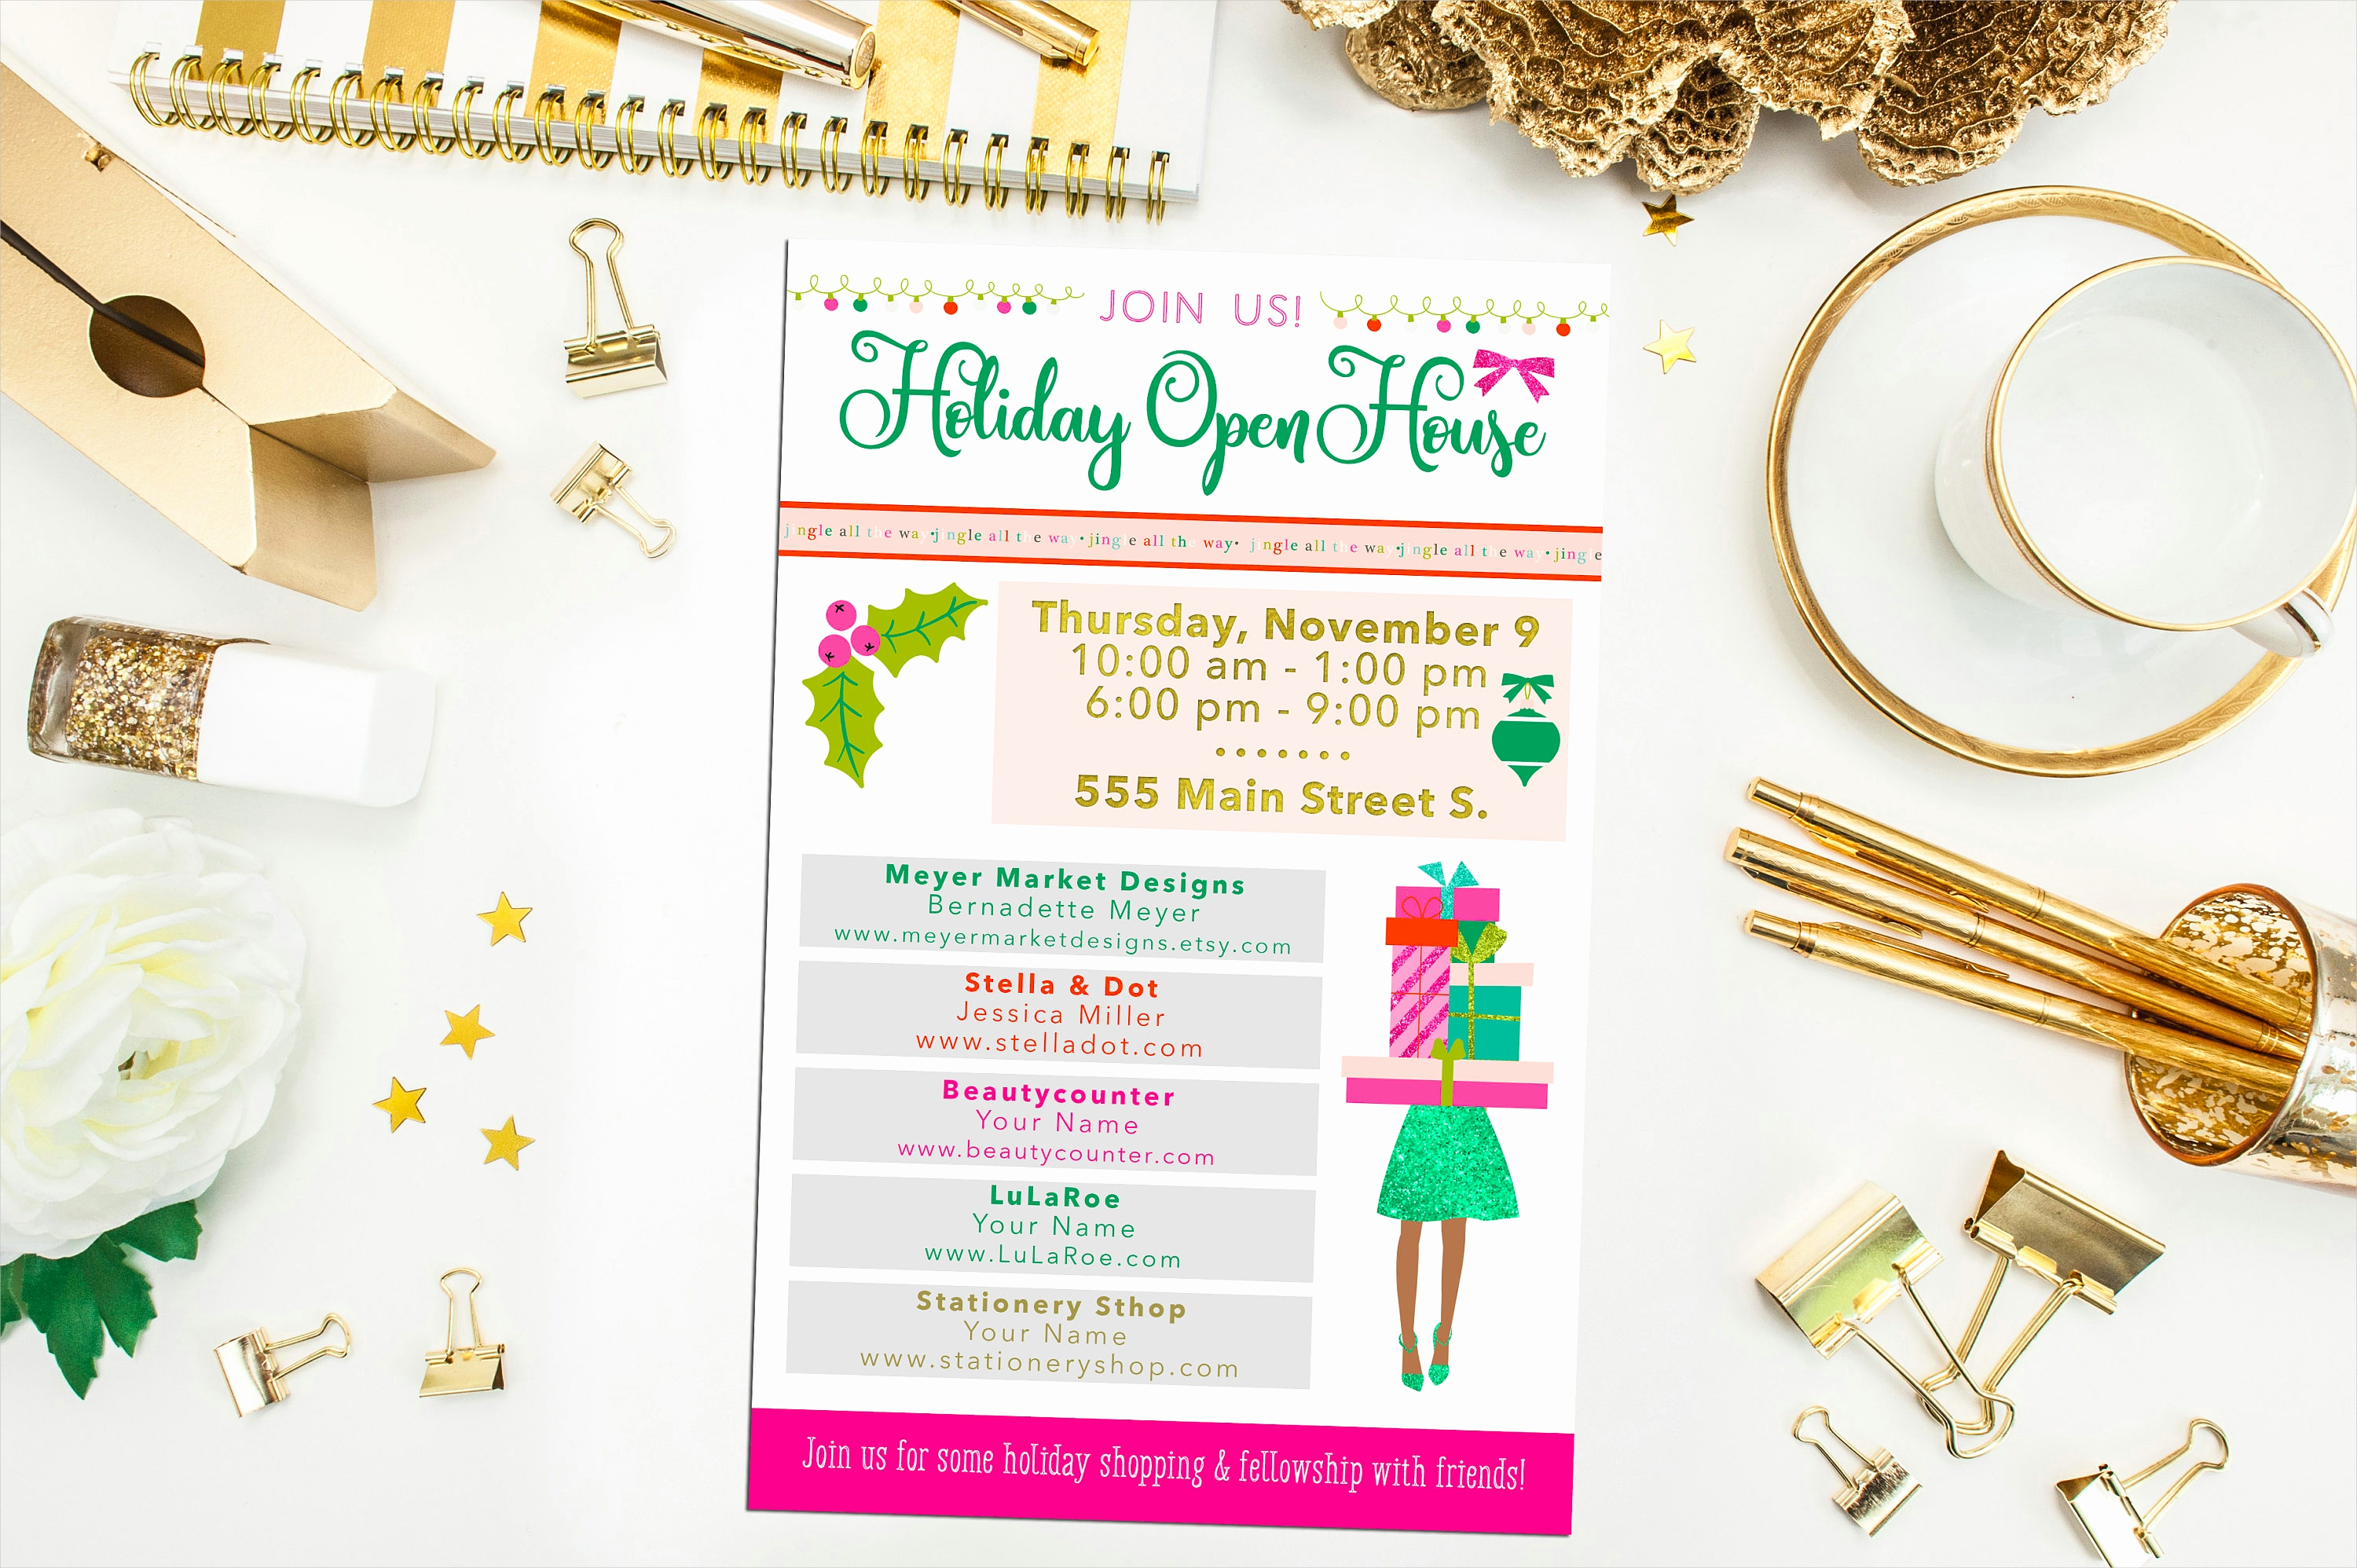 Open House Invitation Examples Lovely 15 Open House Invitation Designs and Examples – Psd Ai